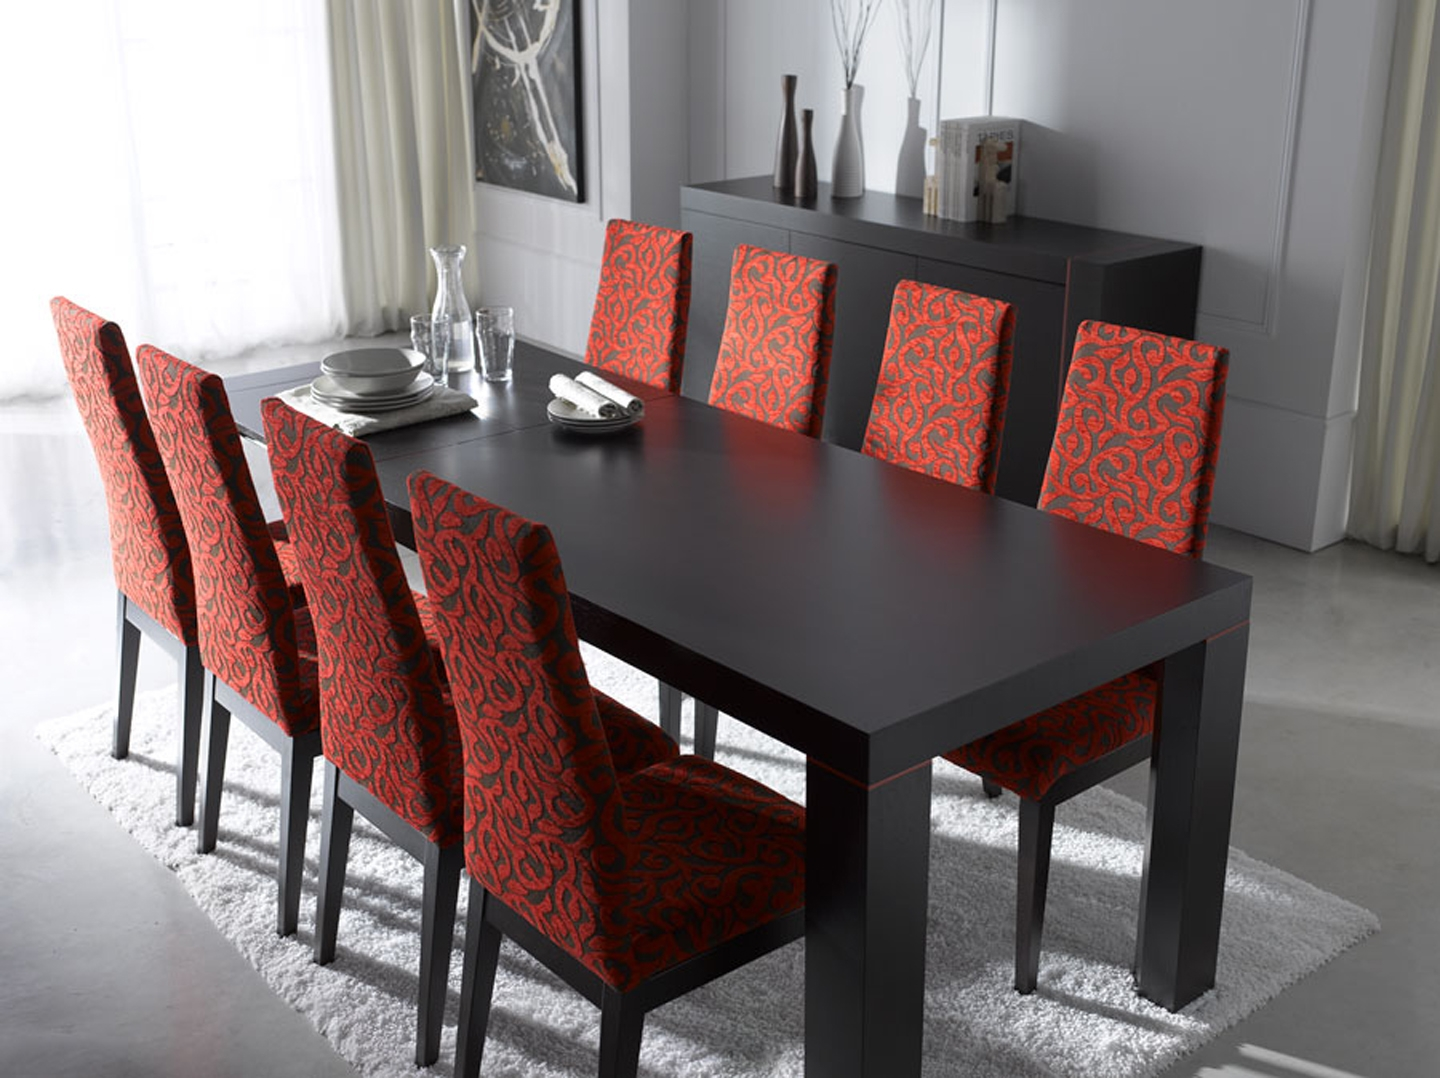 Top 10 list modern dining room furniture for sale for Modern dining room chairs for sale